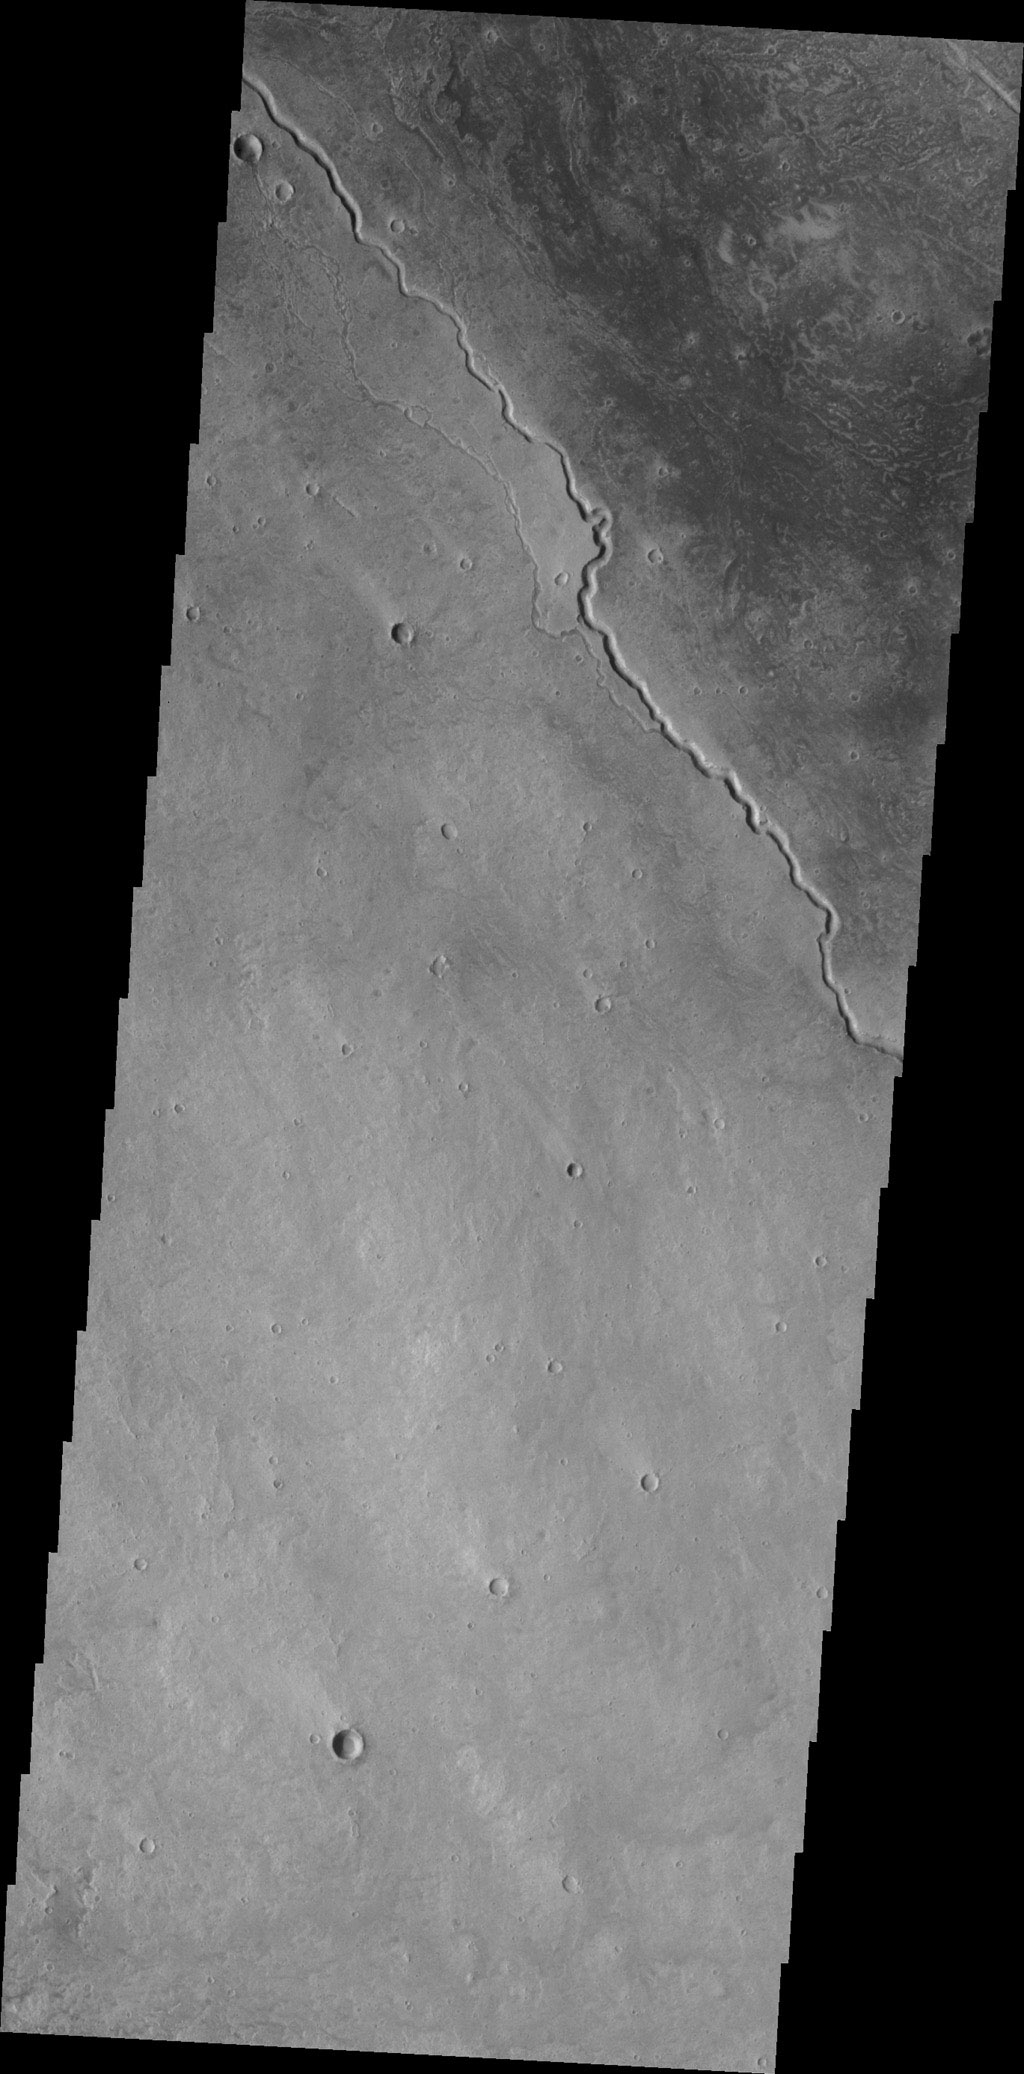 The channels in this image from NASA's 2001 Mars Odyssey spacecraft are located on the northwestern margin of the Elysium Volcanic complex on Mars. Channels are very common in this region and were likely created by the flow of lava.